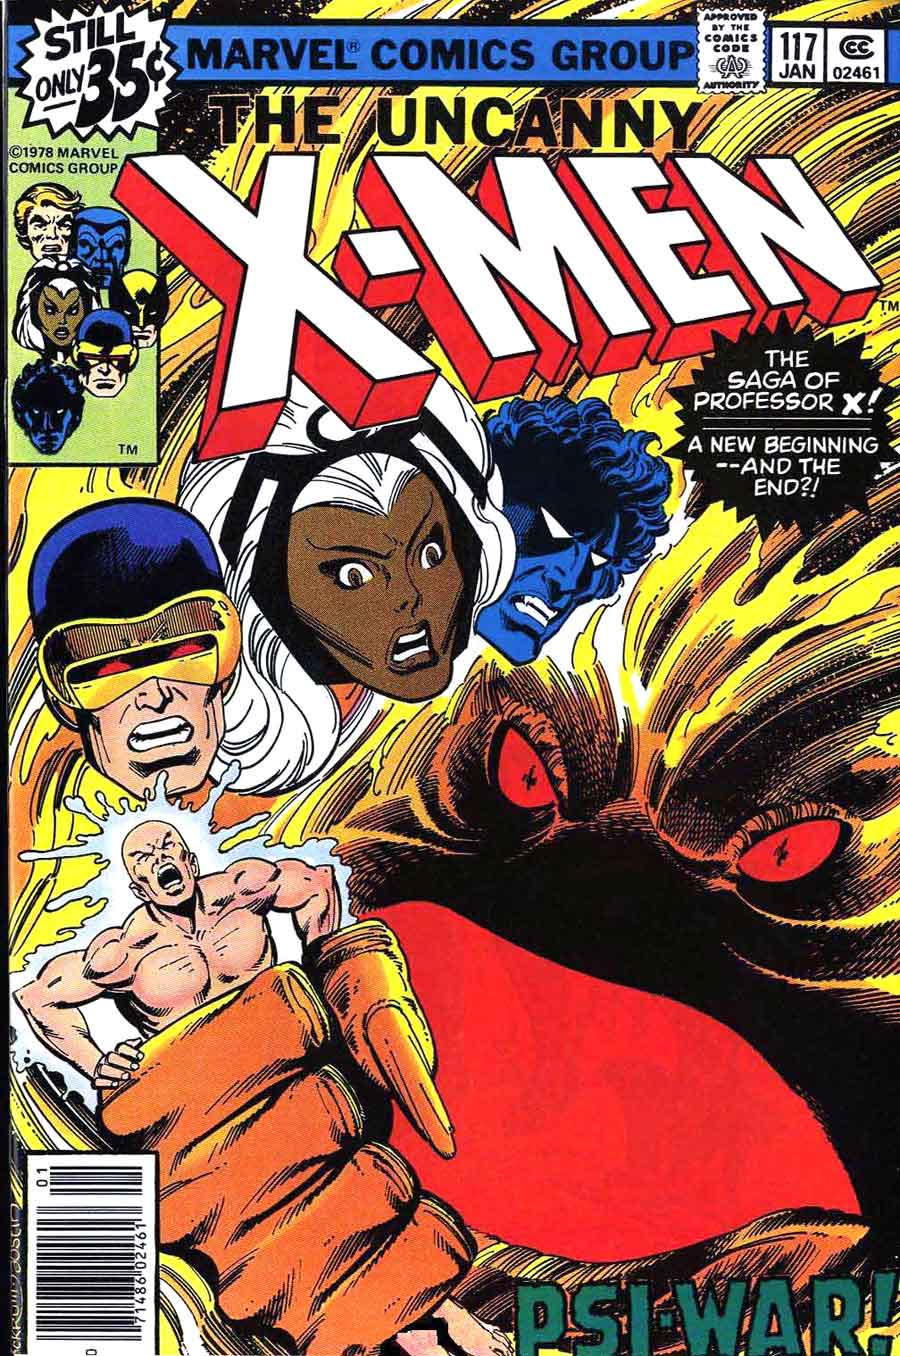 X-men v1 #117 marvel comic book cover art by John Byrne